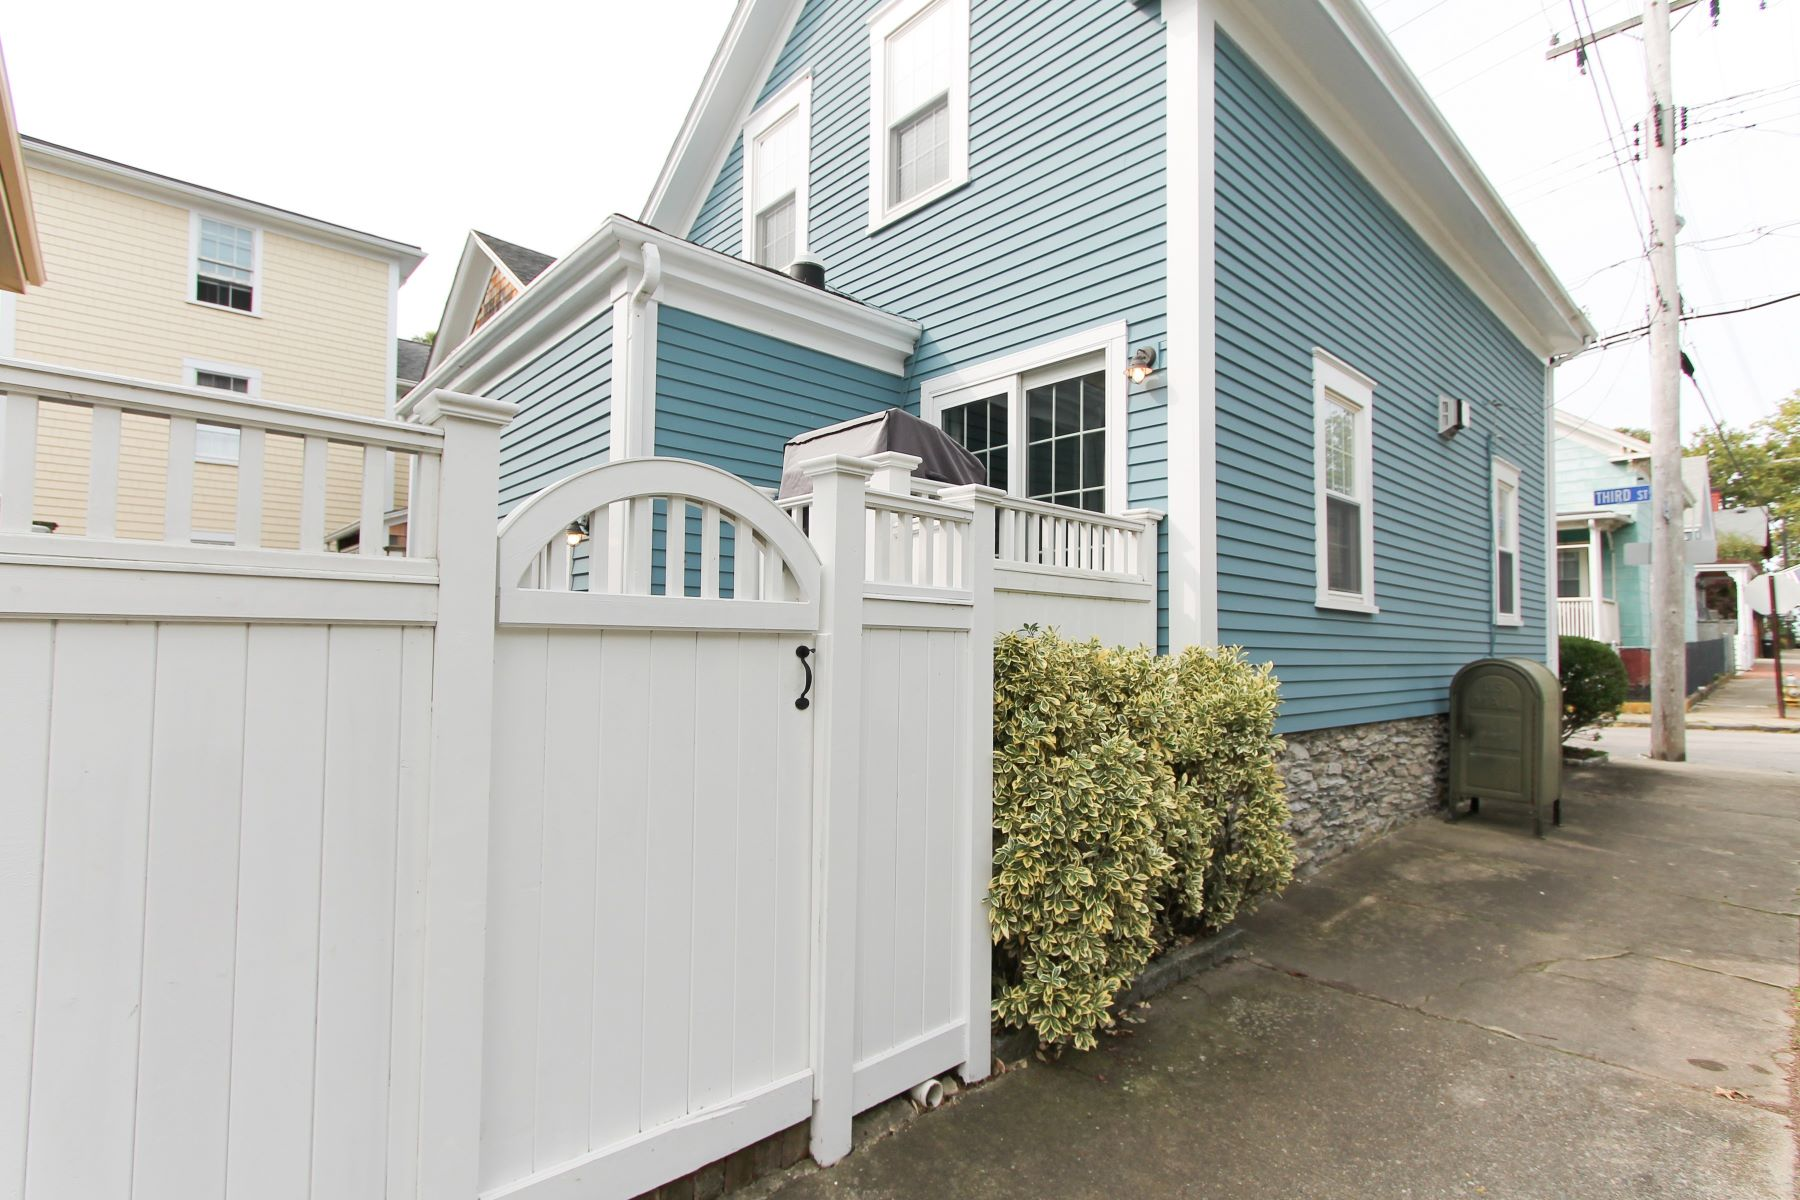 Additional photo for property listing at Dalton E. Young House 55 Third Street Newport, Rhode Island 02840 United States